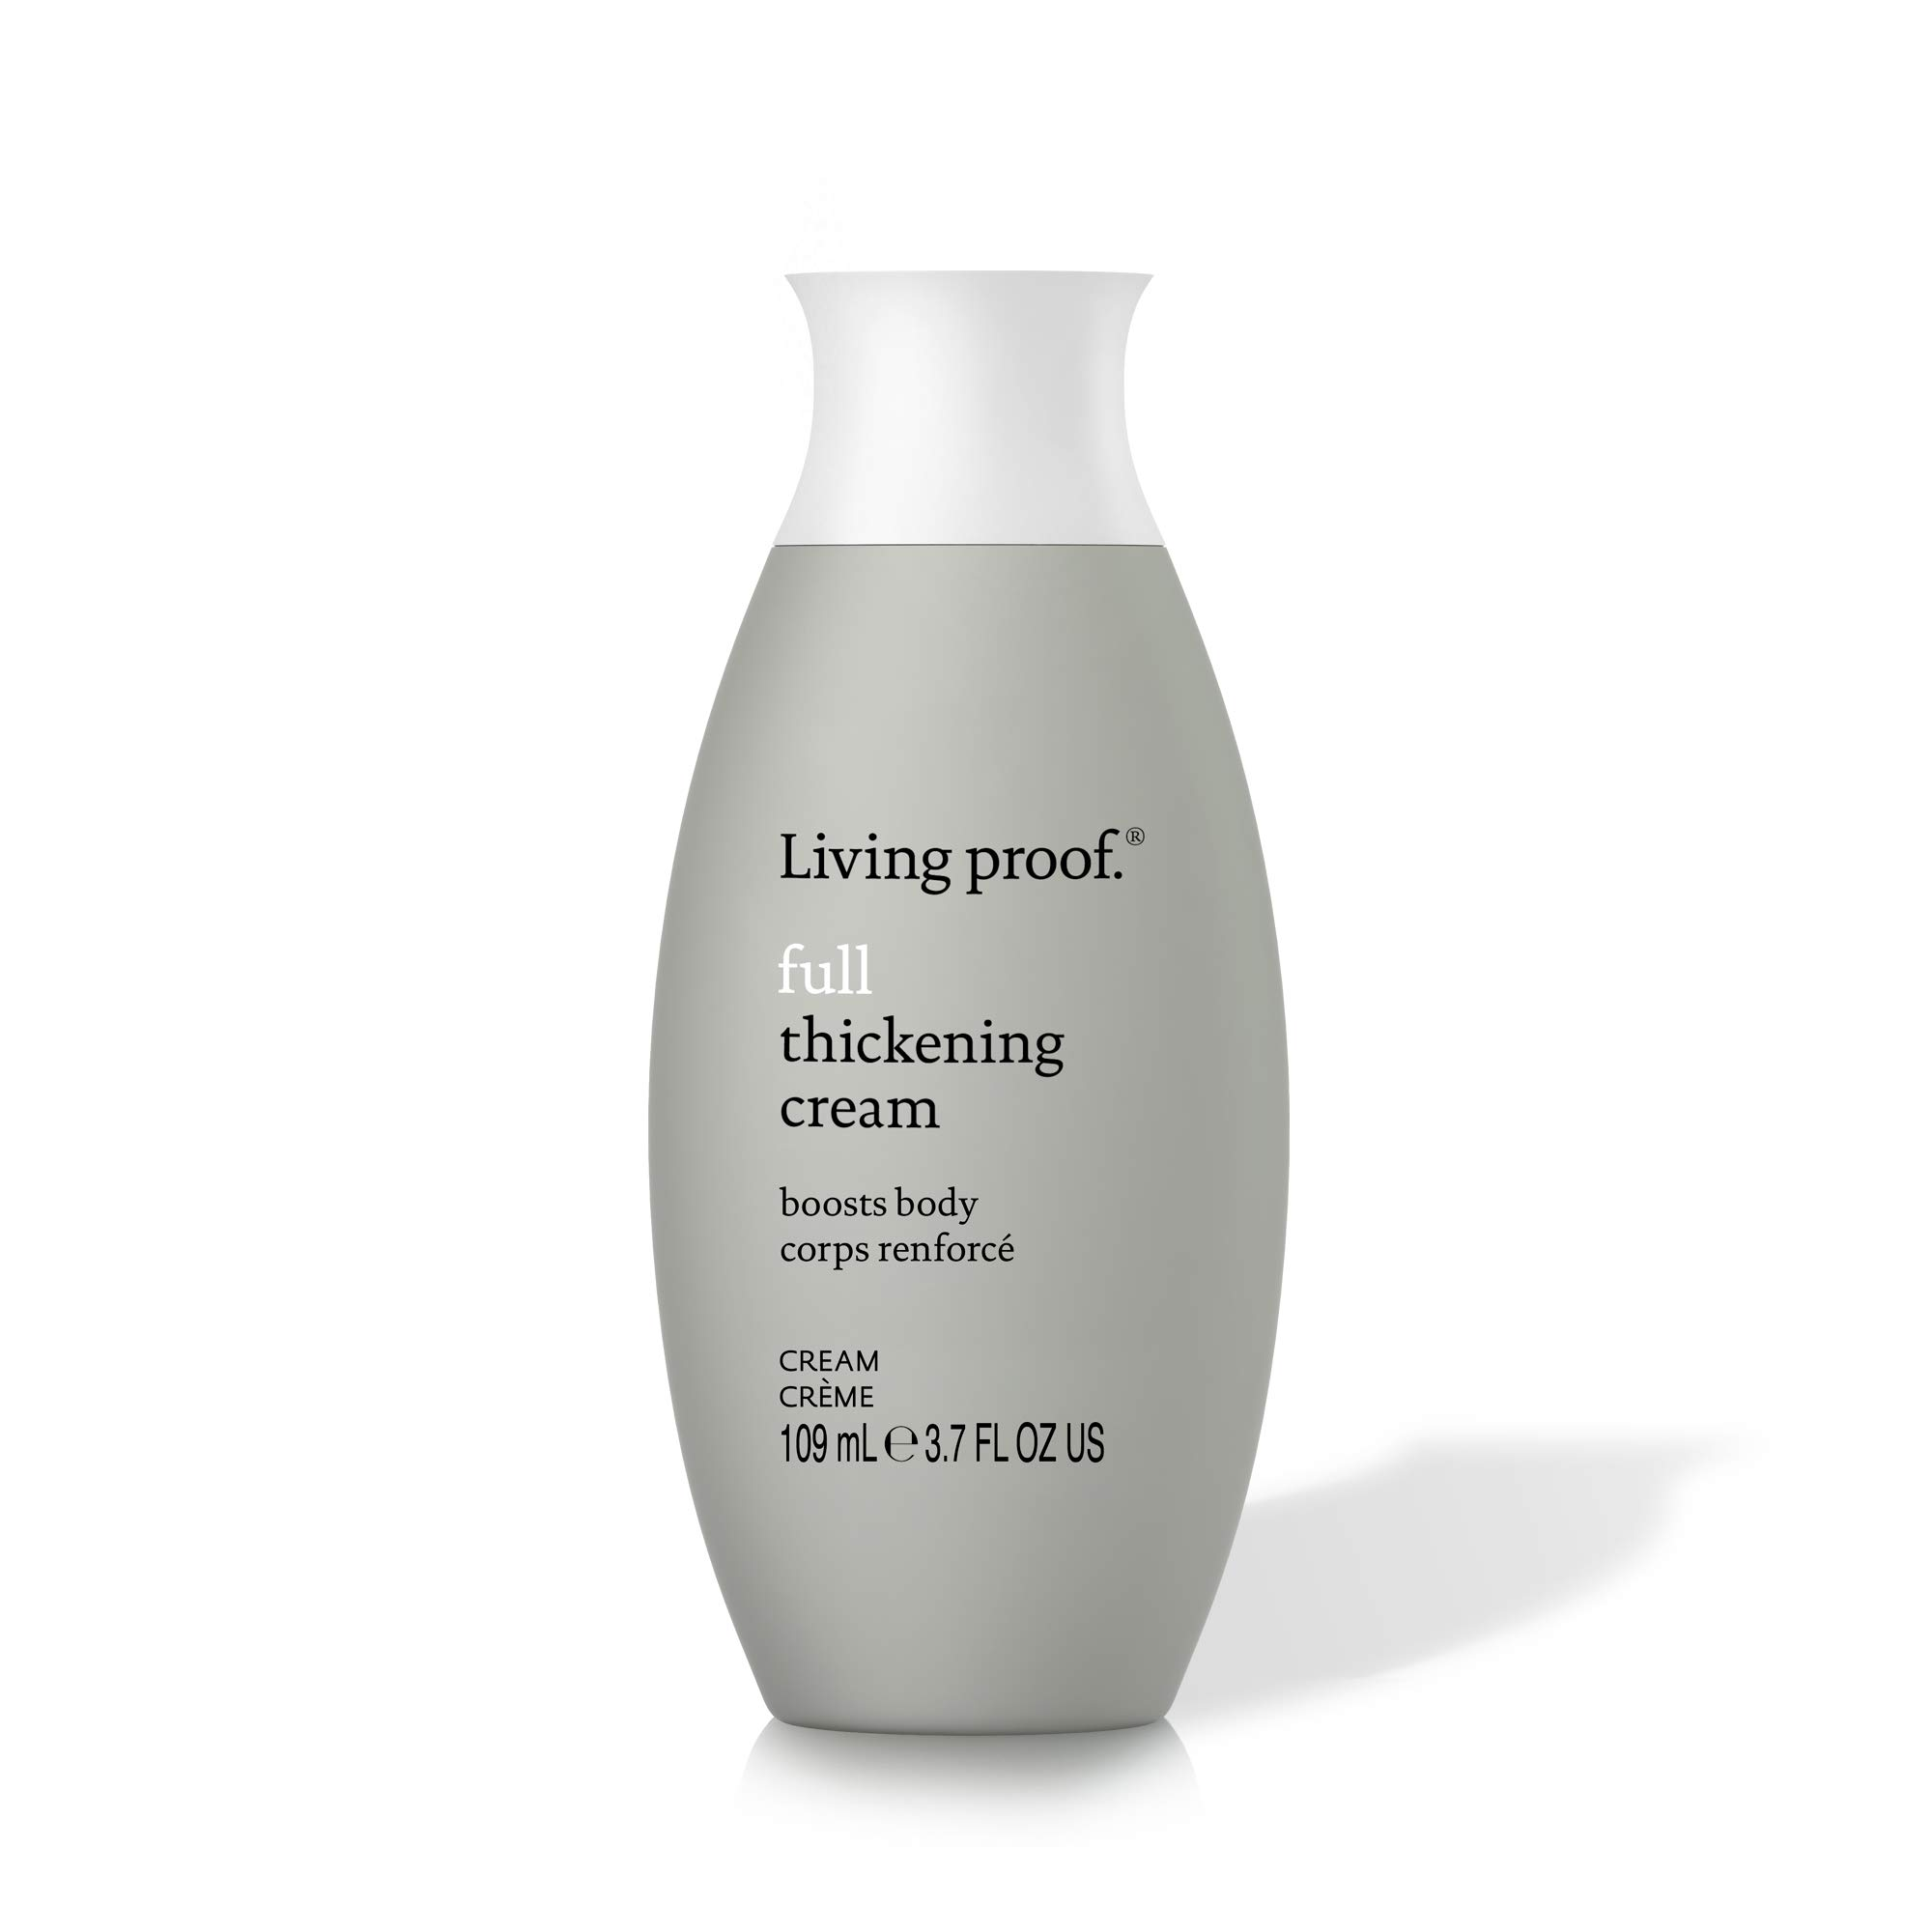 Living Proof Full Thickening Cream, 3.7 oz by Living Proof